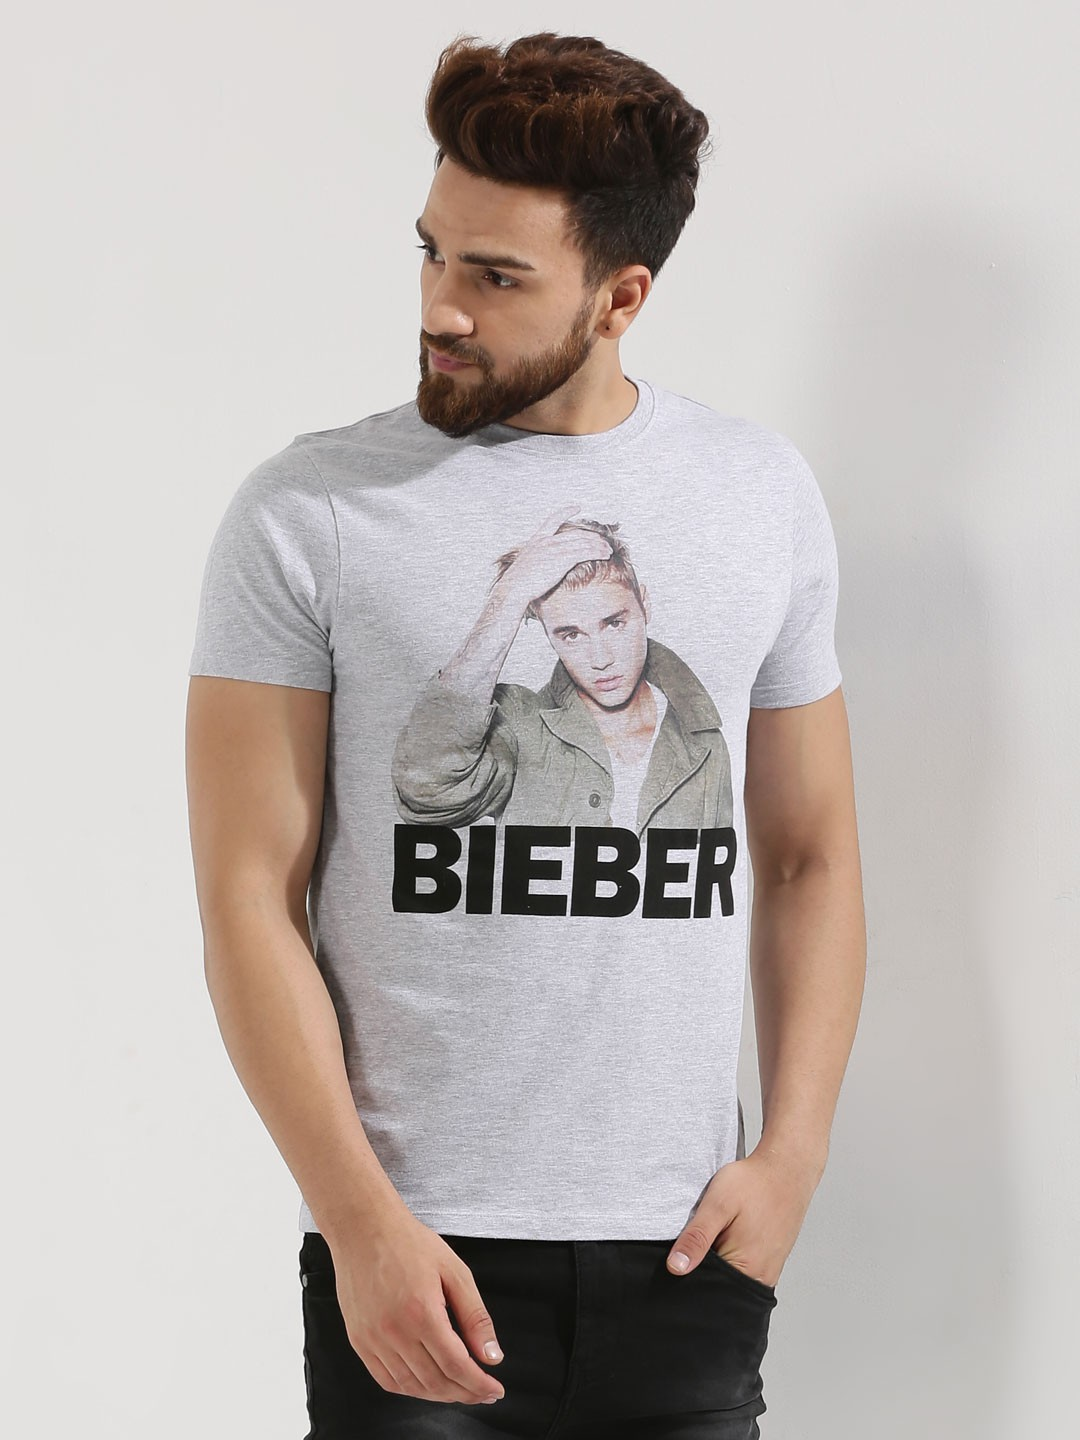 buy limited edition justin bieber t shirt for men men 39 s. Black Bedroom Furniture Sets. Home Design Ideas